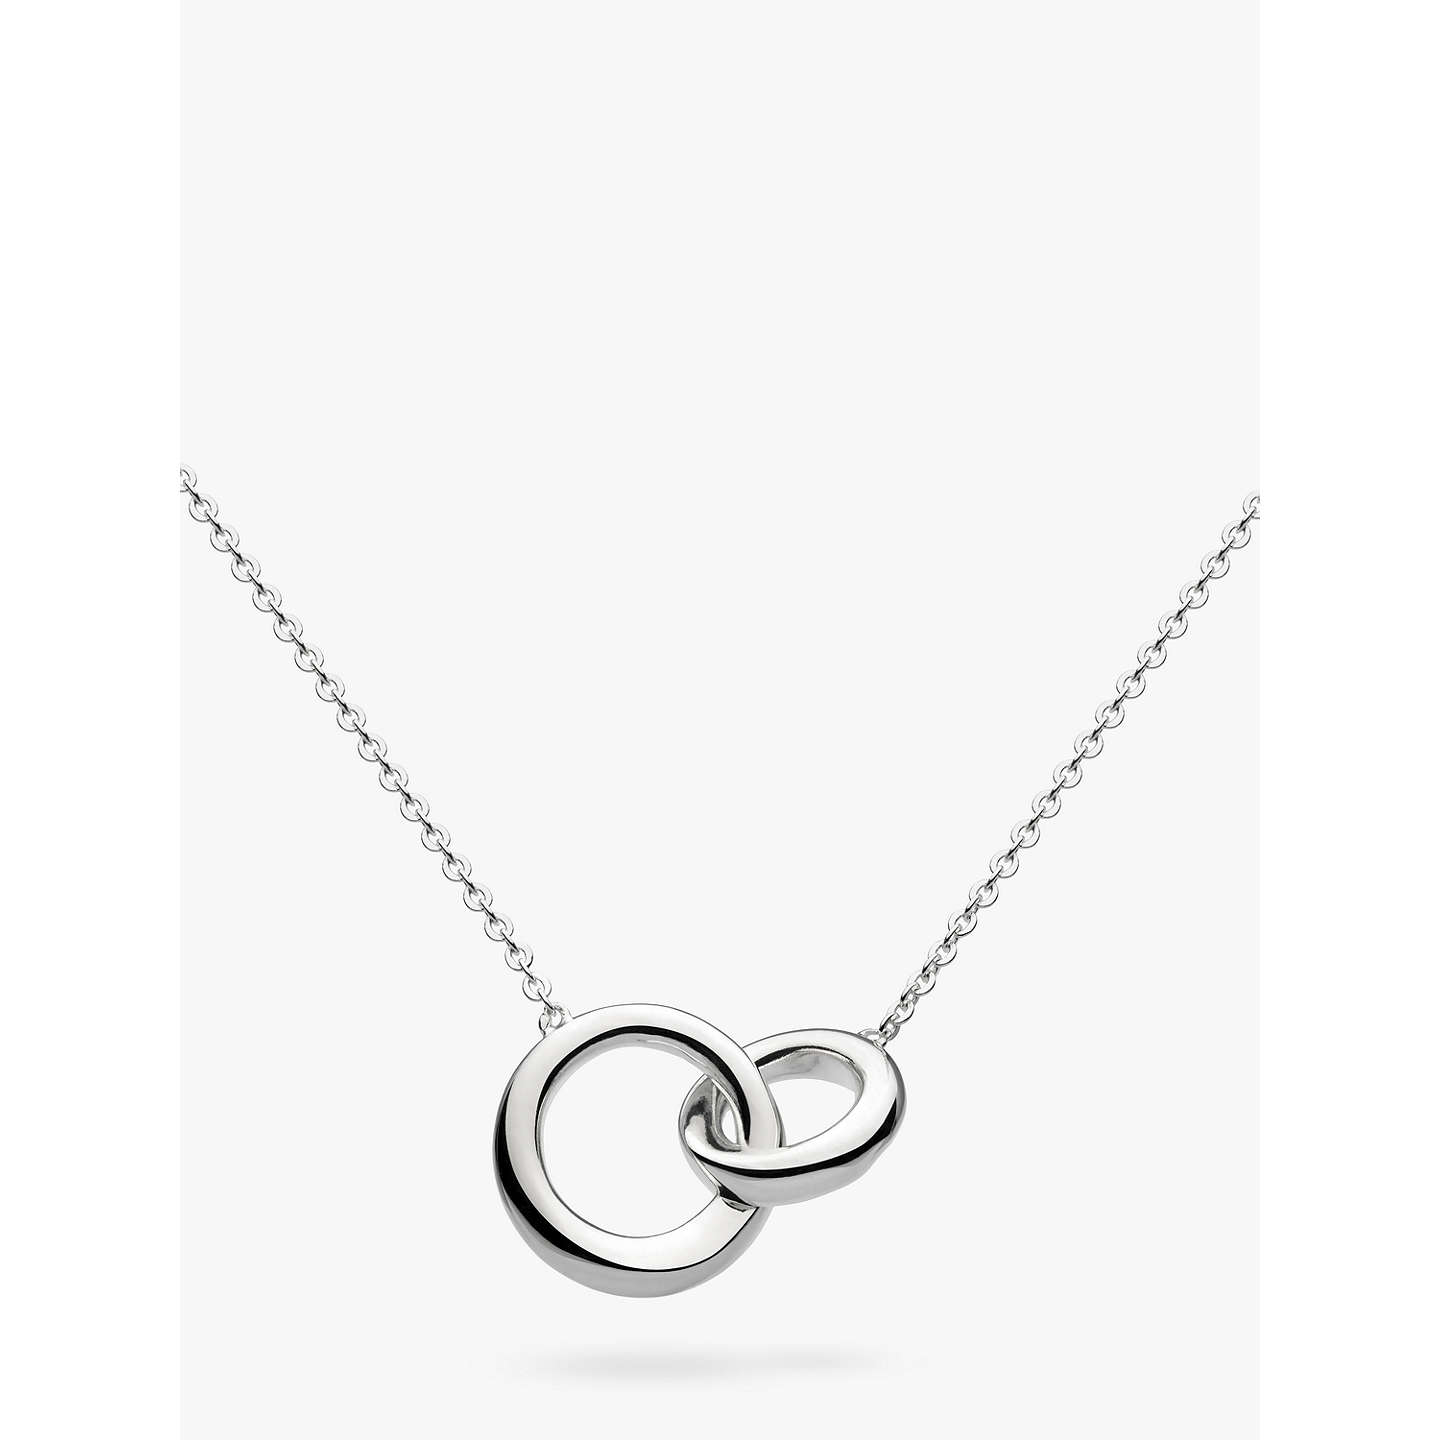 gift com necklace dp pendant entwined for her amazon circle double minimalist couple ring sister interlocking